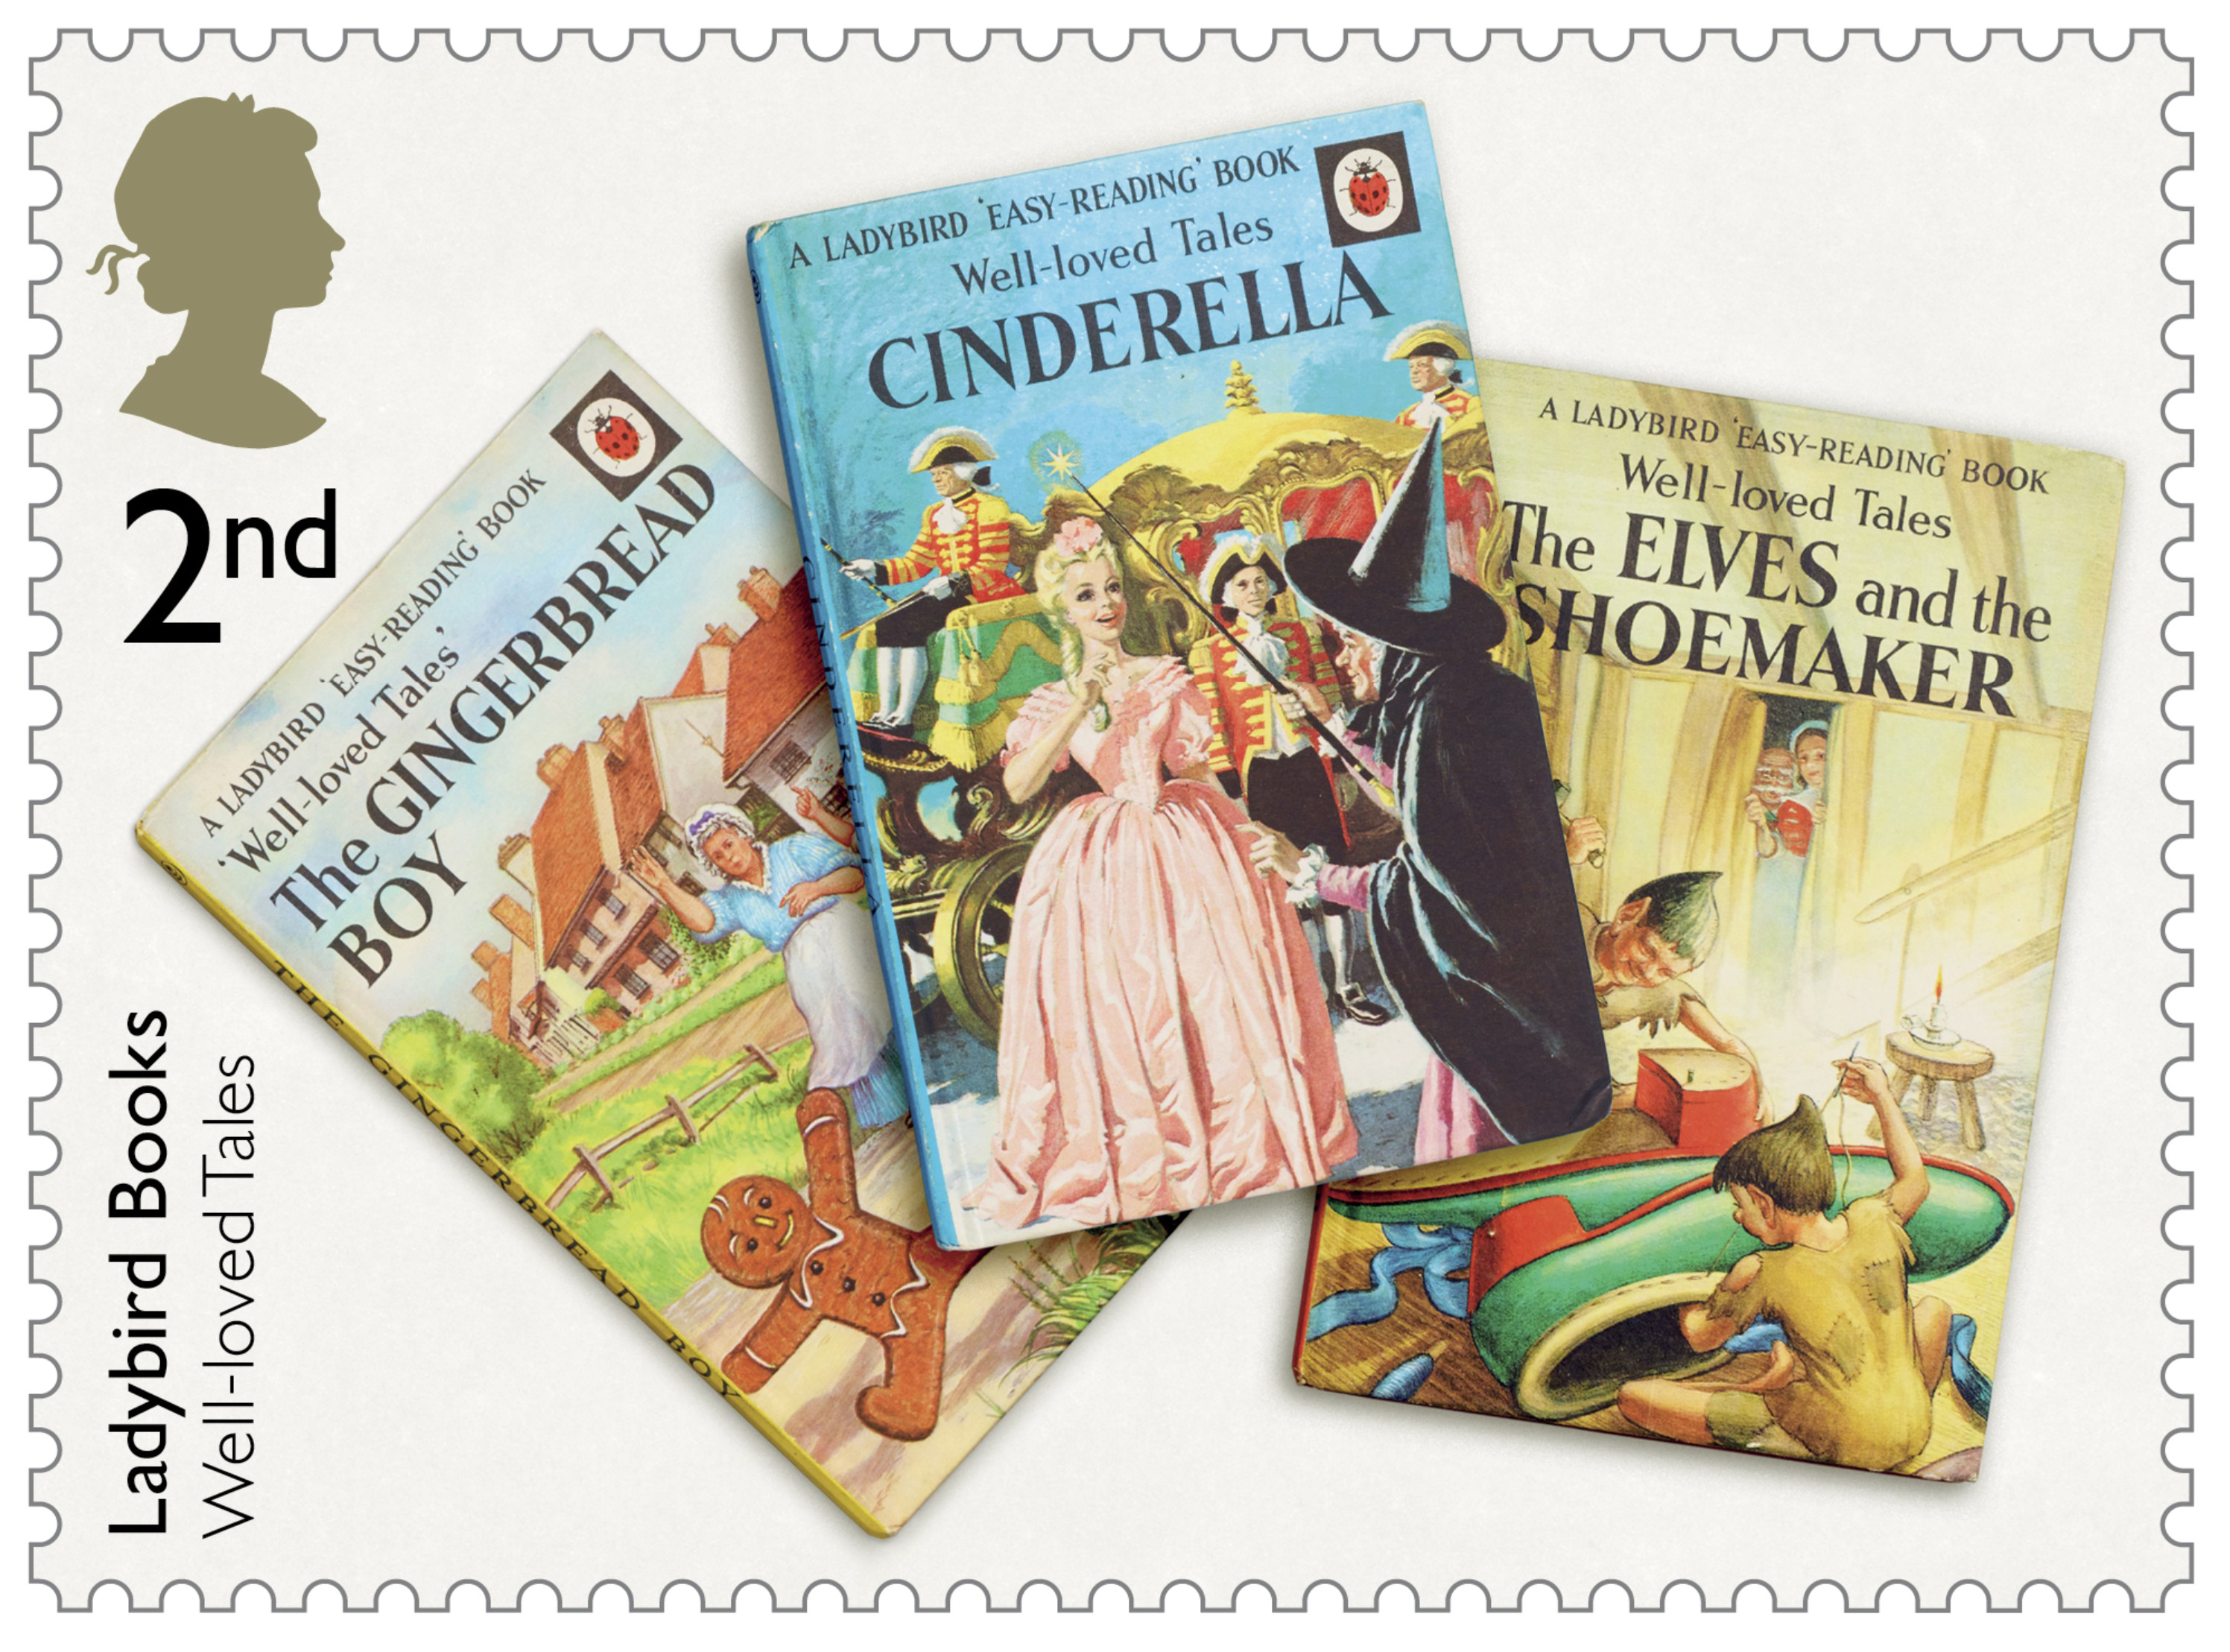 Nostalgic Ladybird Books recognised on stamps